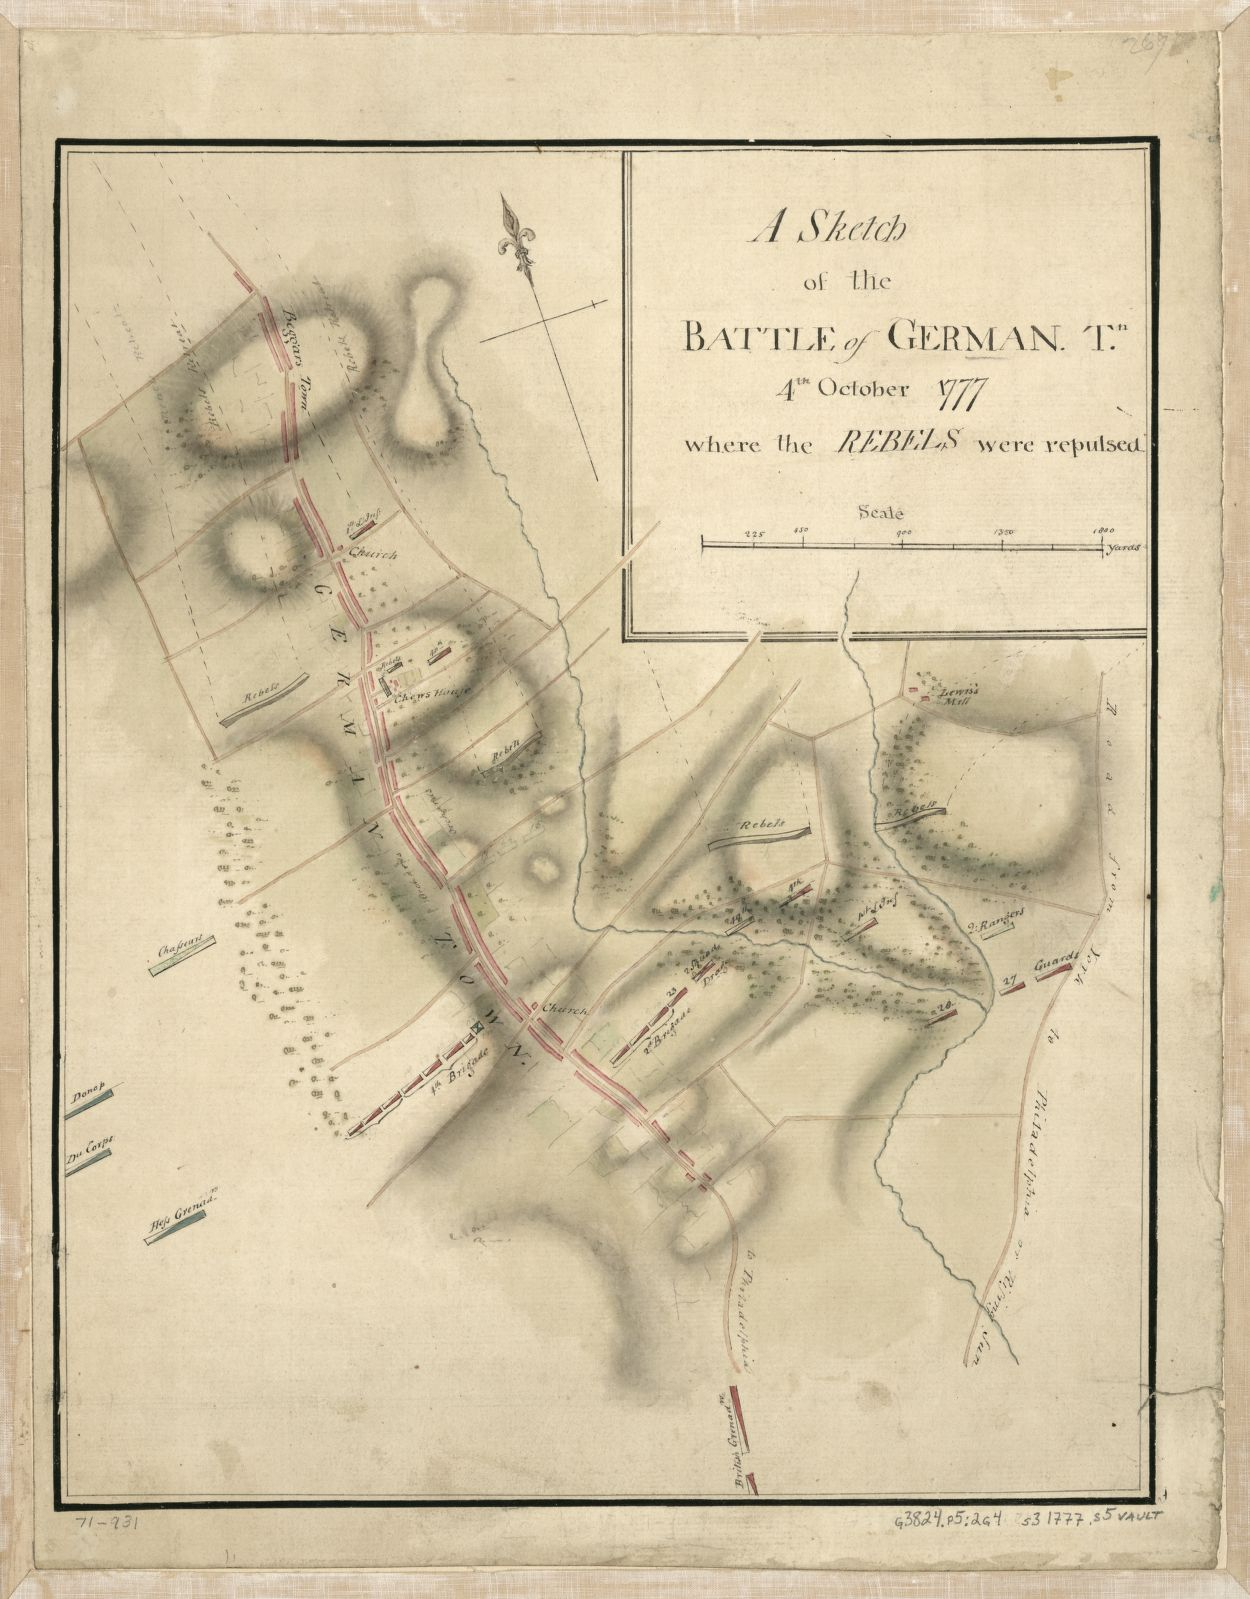 The low point of Stephen's military career occurred at the Battle of Germantown when troops under his command mistook American forces for the British and fired on them.  Stephen's was accused of drunkenness and removed from the army. -  A Sketch of the Battle of Germantown.  Courtesy Library of Congress, G3824.P5:2G4S3 1777 .S5